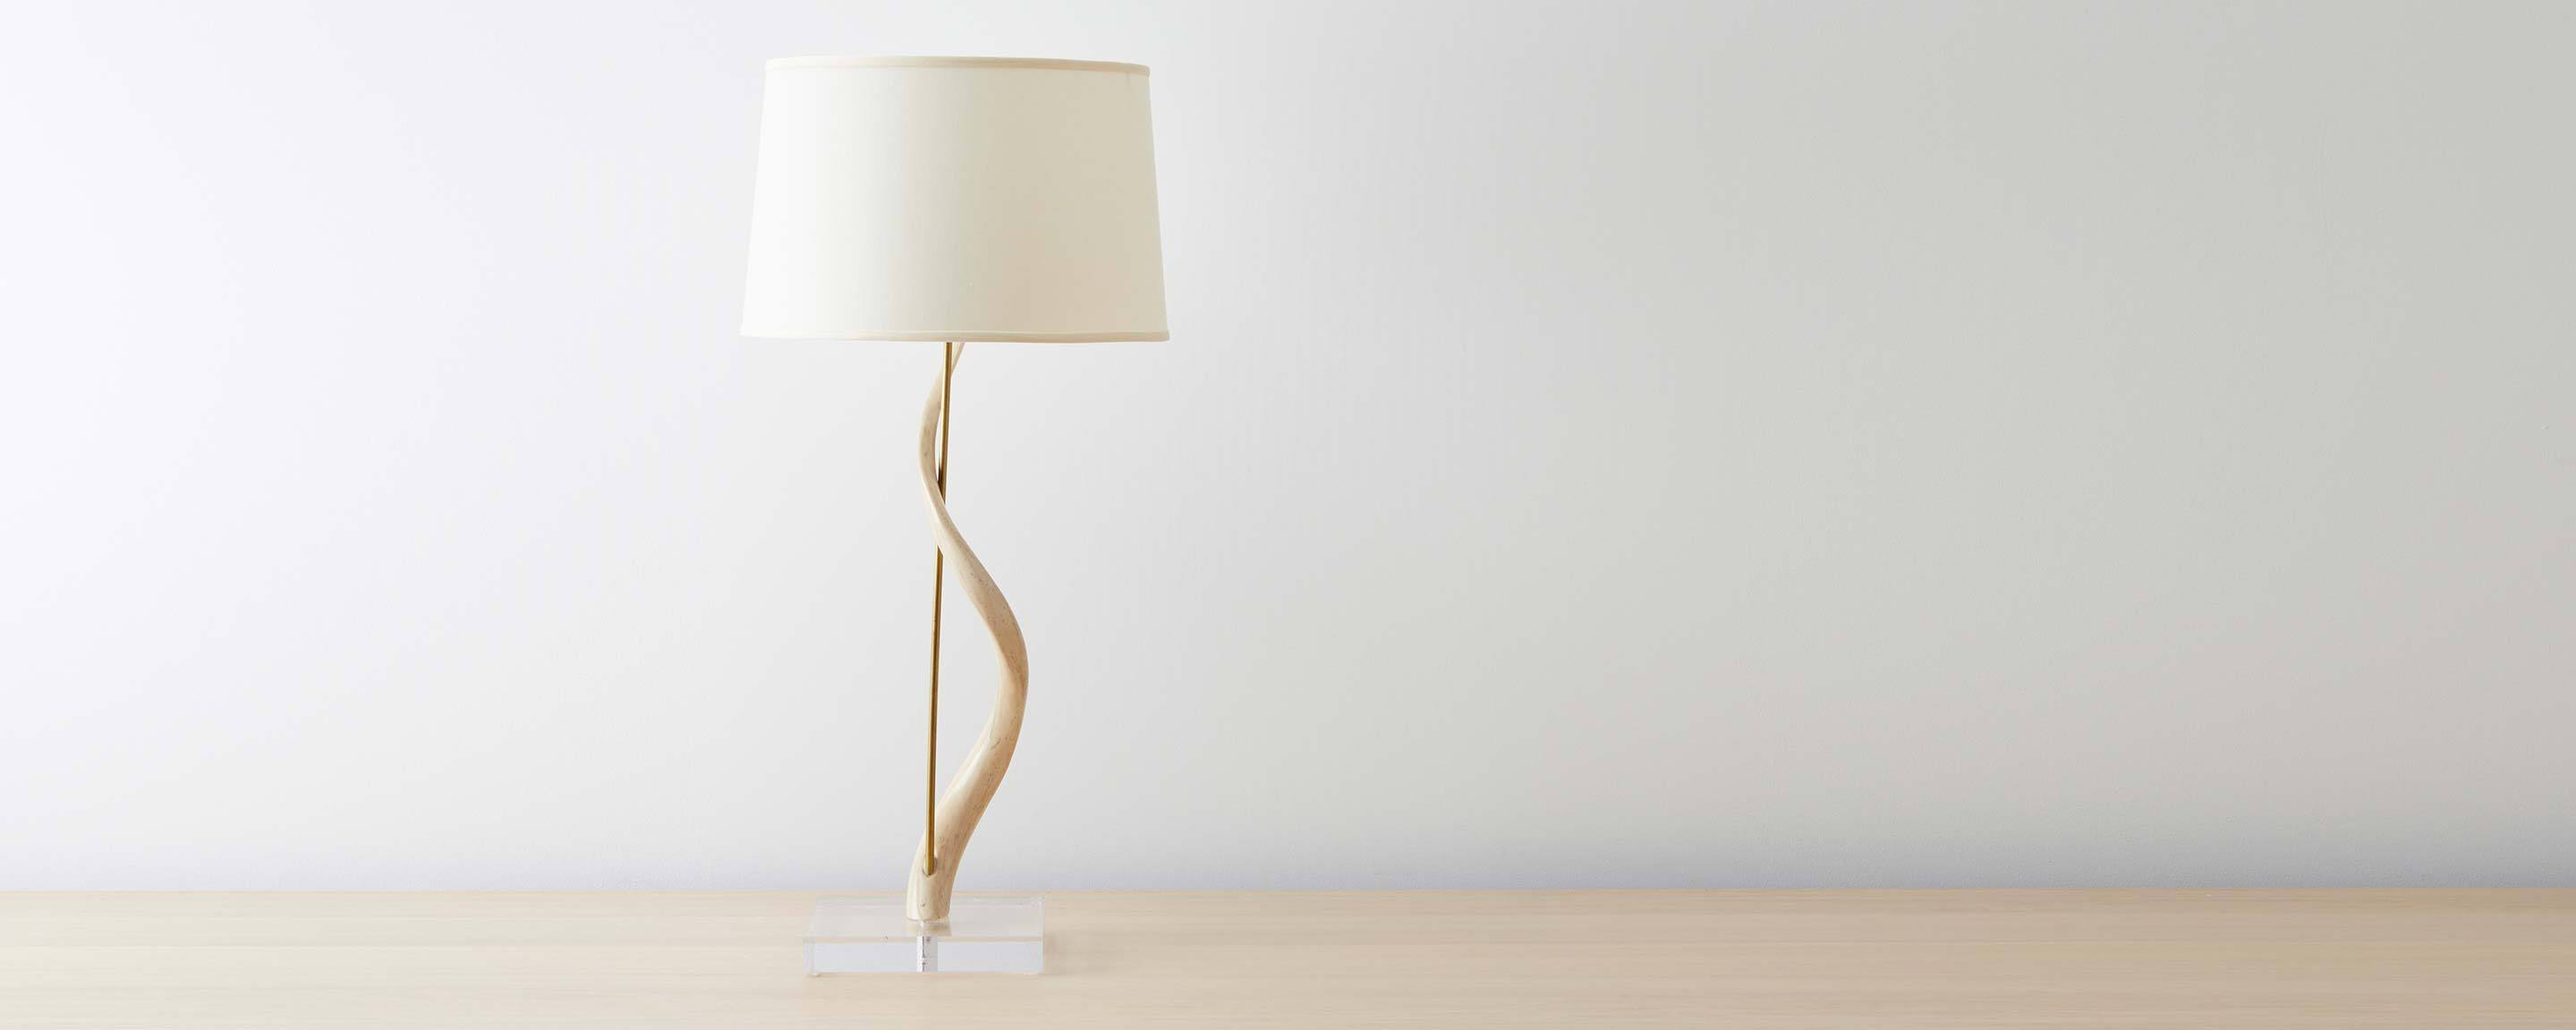 Kudu horn table lamp homenature kudu horn table lamp mozeypictures Images